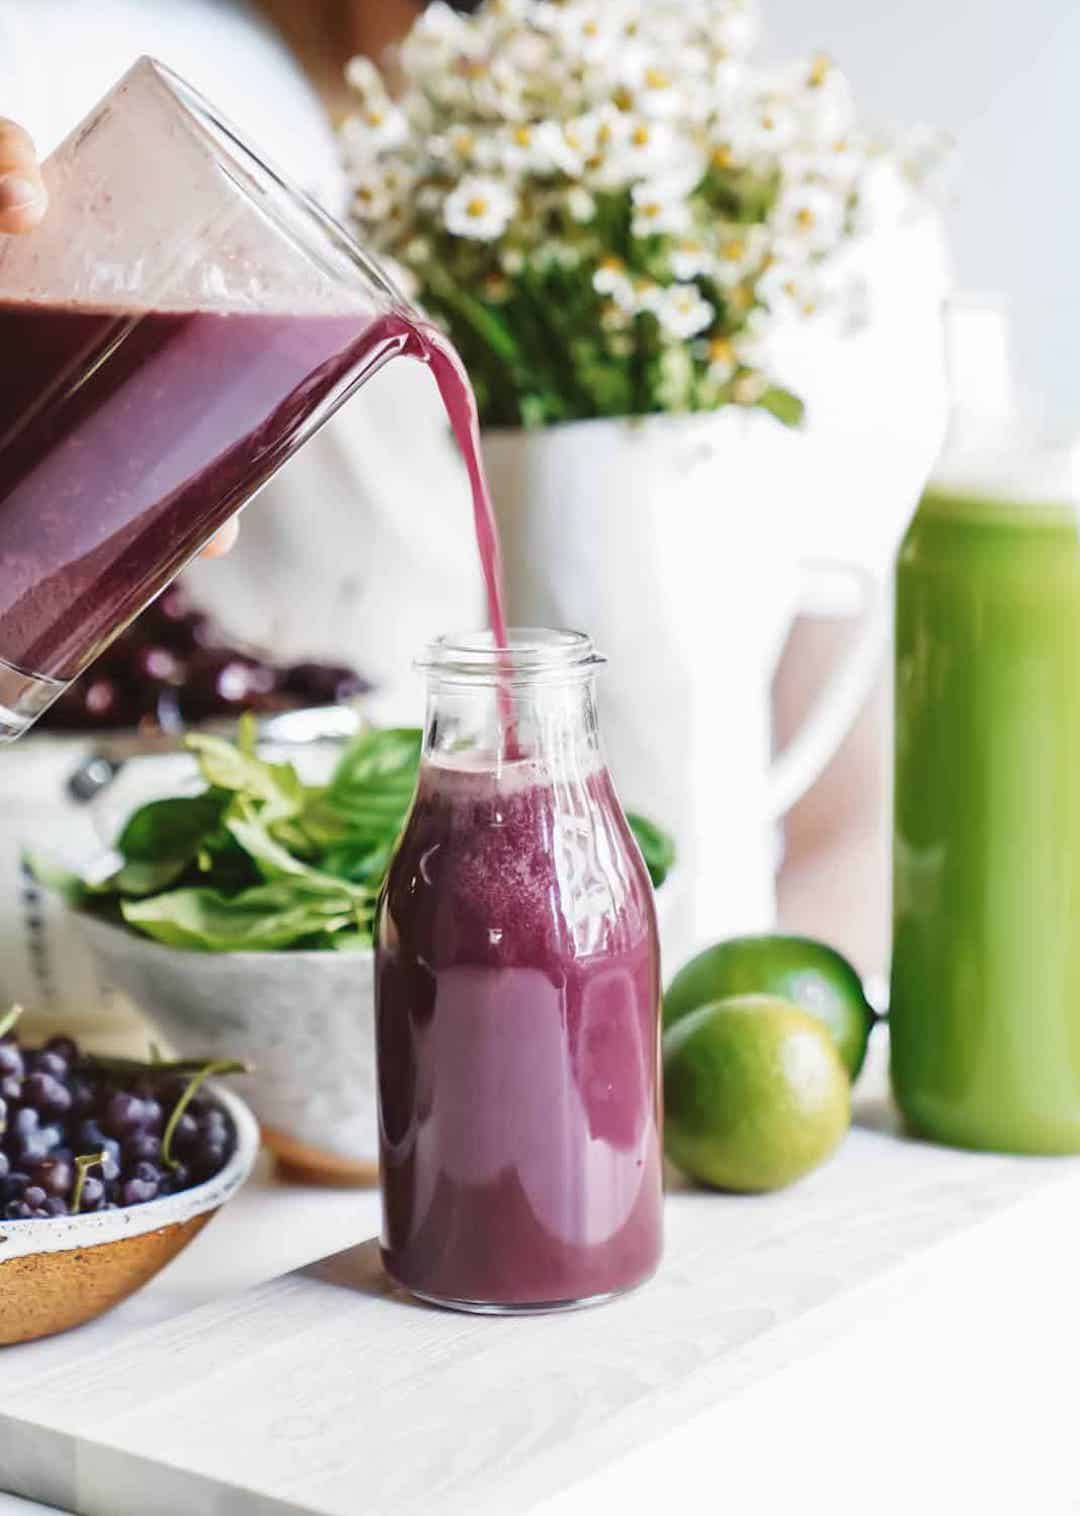 Pouring purple juice from a pitcher into a jar